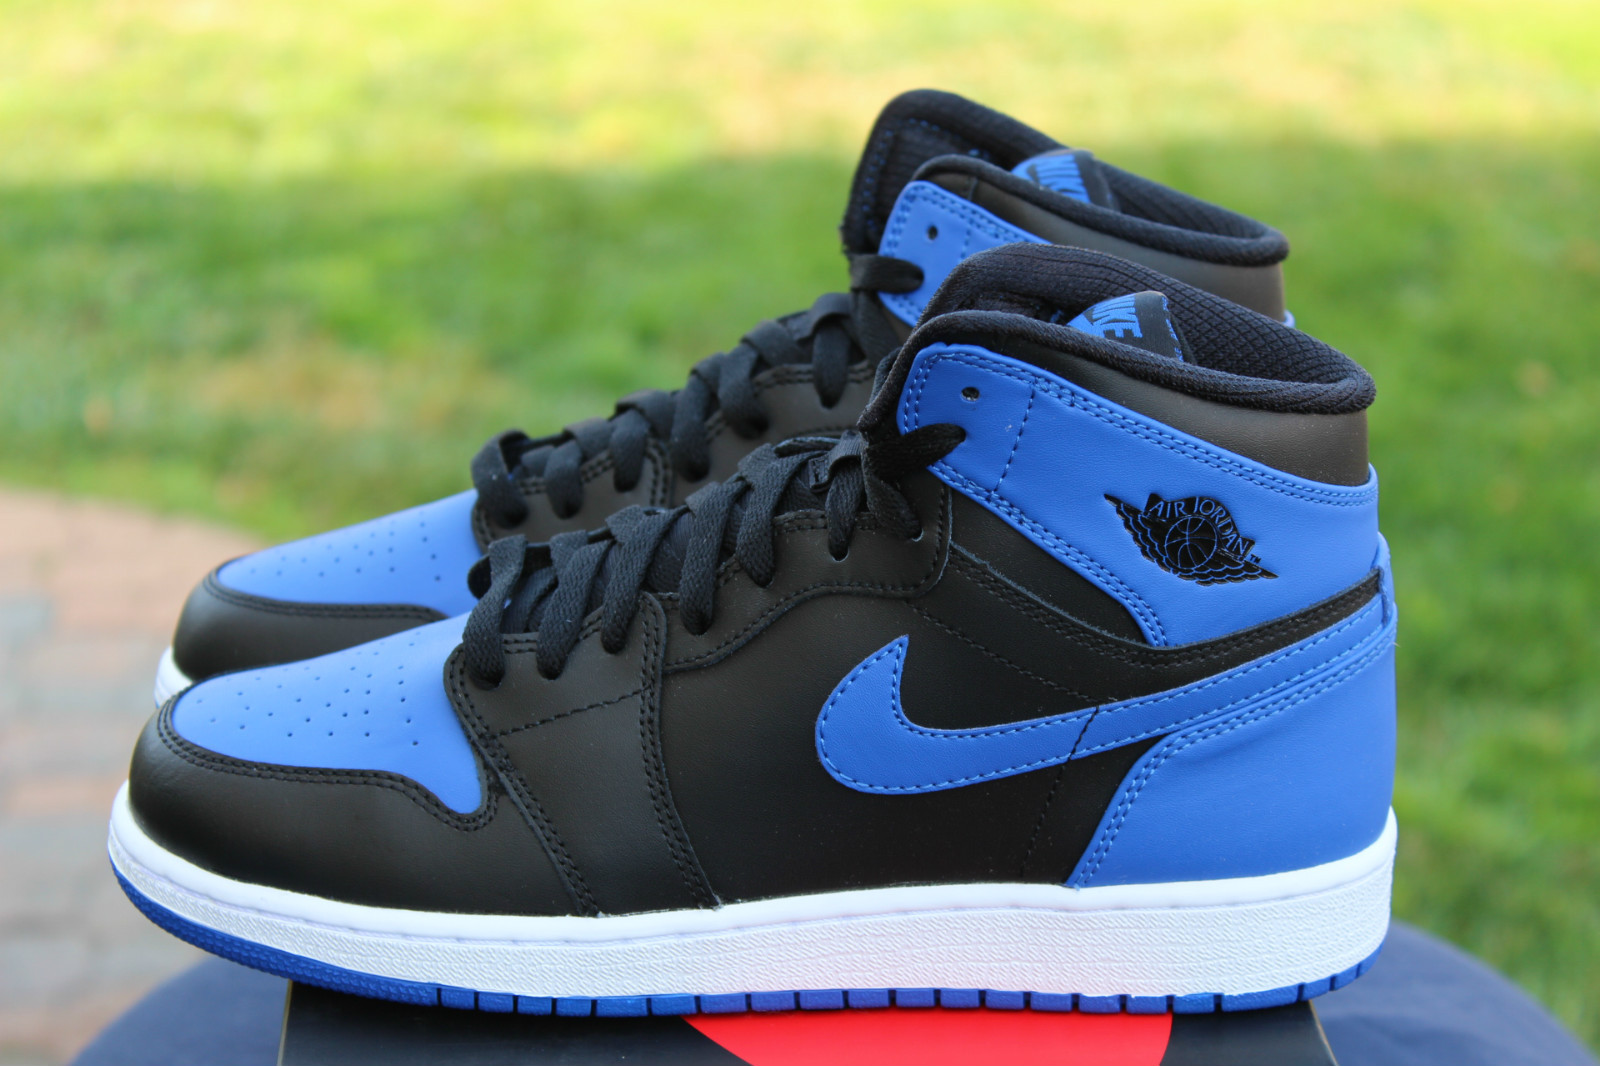 uniformes Nike équipe - Air Jordan 1 Retro high OG GS Black/Royal Blue | Sneakers ...